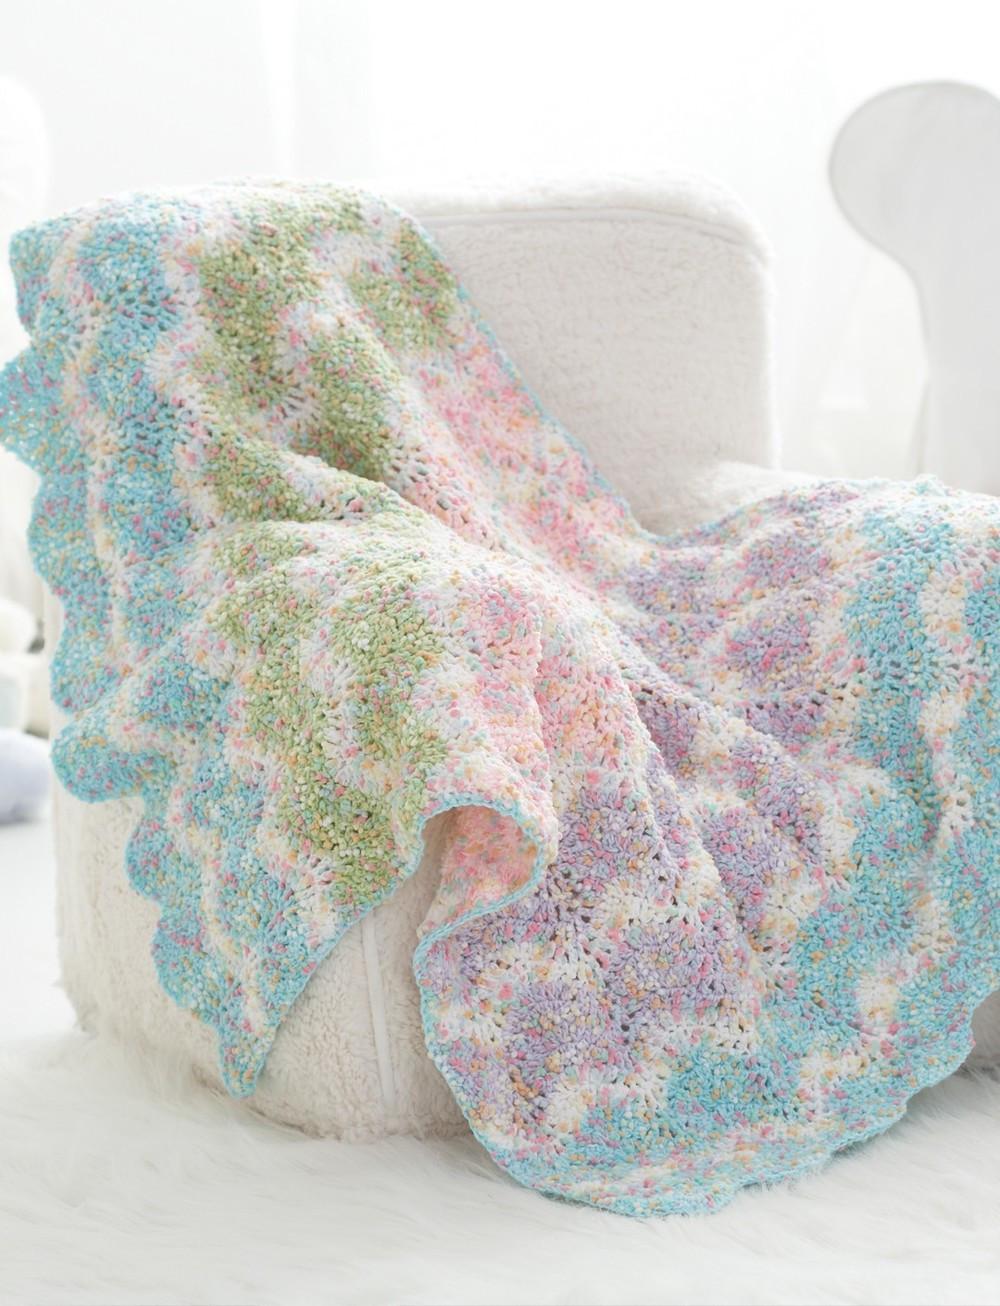 Baby Blanket Patterns Unique Sweet Pastel Waves Crochet Baby Blanket Pattern Of Delightful 50 Pictures Baby Blanket Patterns